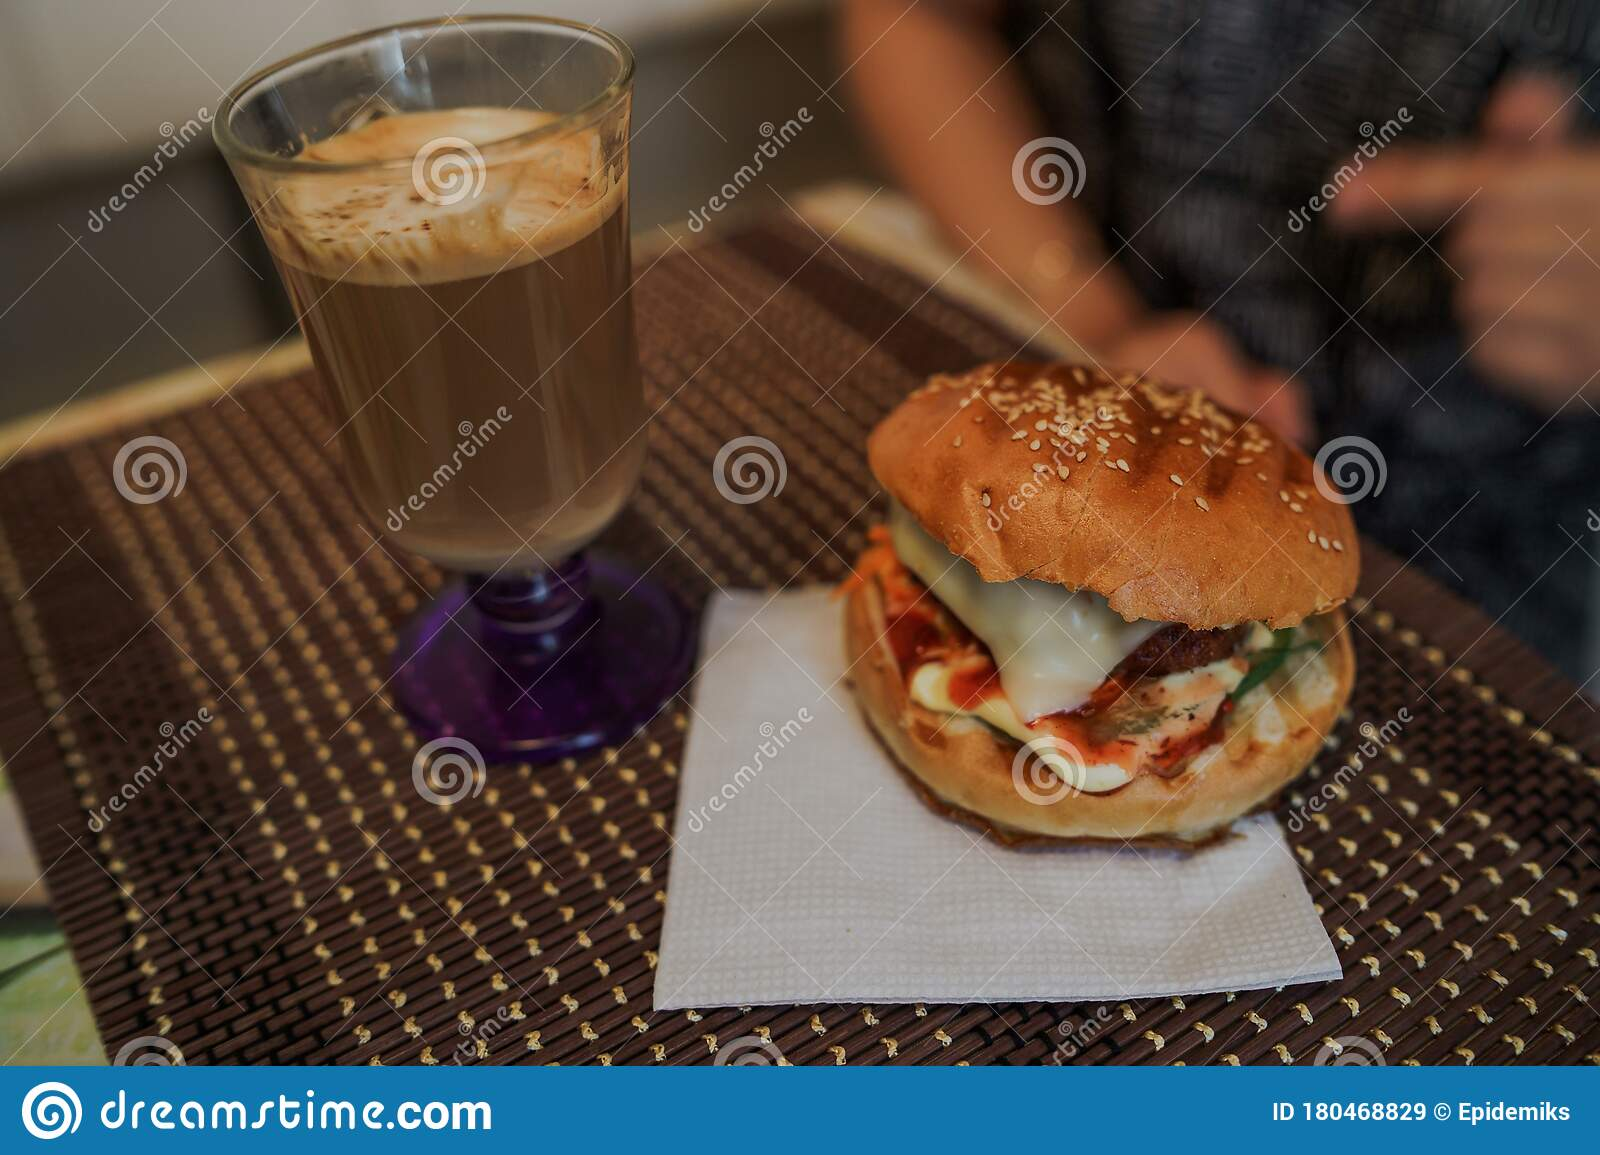 Food Photography Hot Cappuccino With Hamburger At The Table In Fast Food Cafe Cheeseburger And Coffee On The Table Stock Image Image Of Bread Cheeseburger 180468829